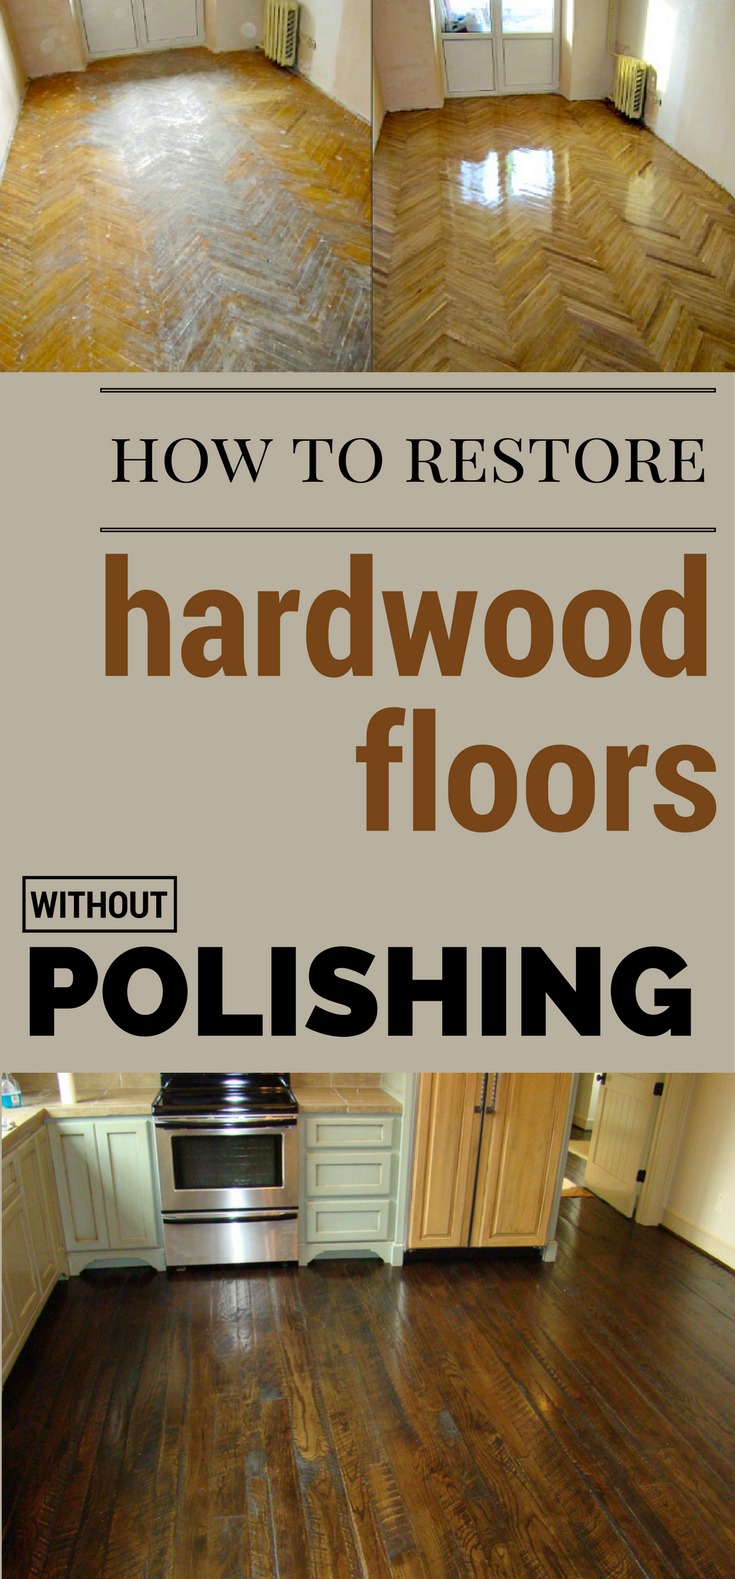 How to restore hardwood floors without polishing for How to clean polished floors